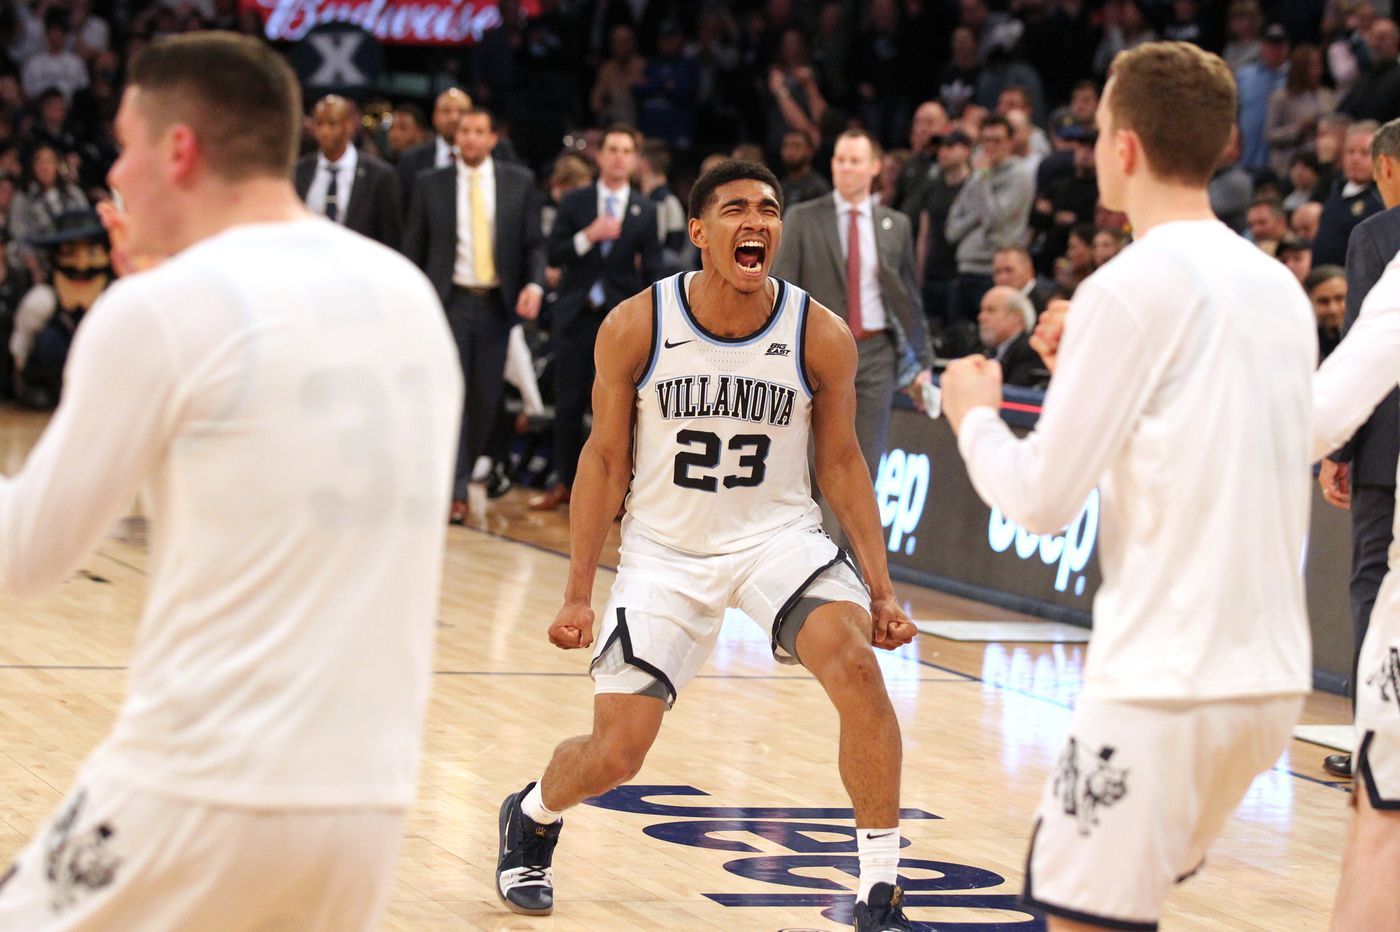 Villanova beats Xavier in overtime to earn a chance at a third straight Big East title